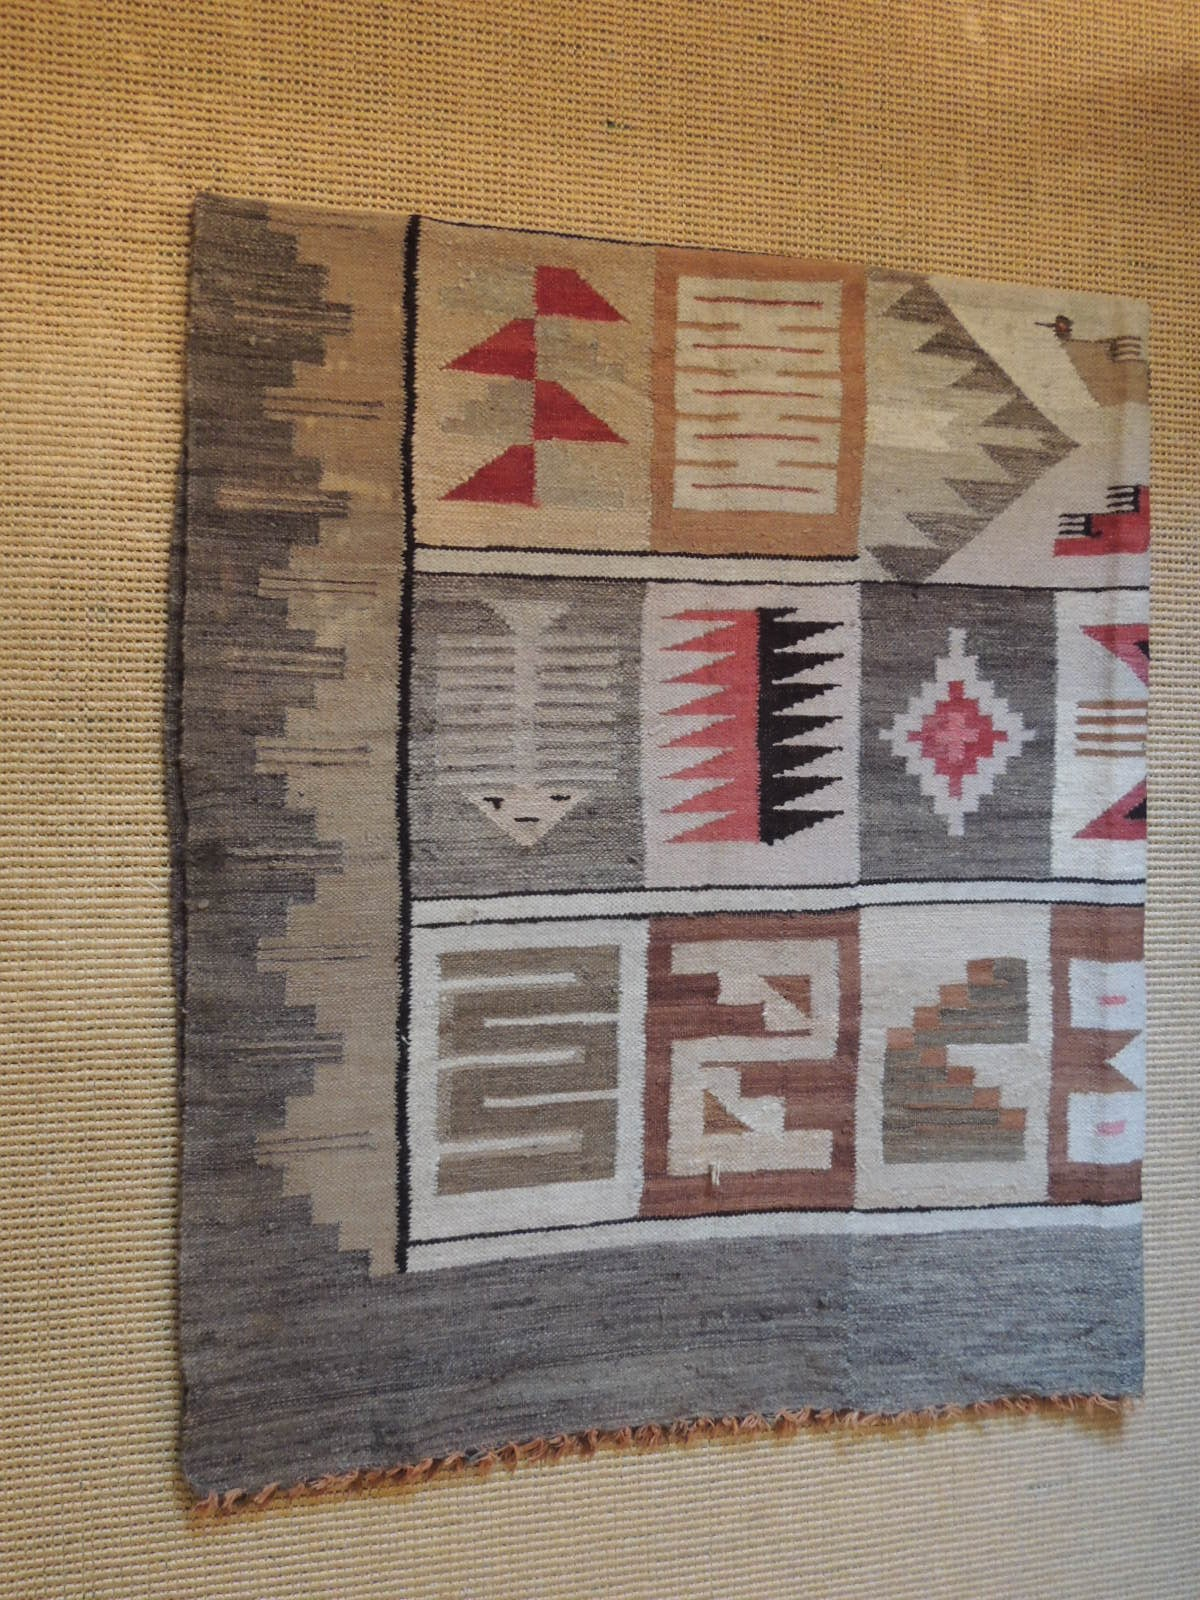 Home u0026gt; Furniture u0026gt; Rugs and Carpets u0026gt; North and South American Rugs